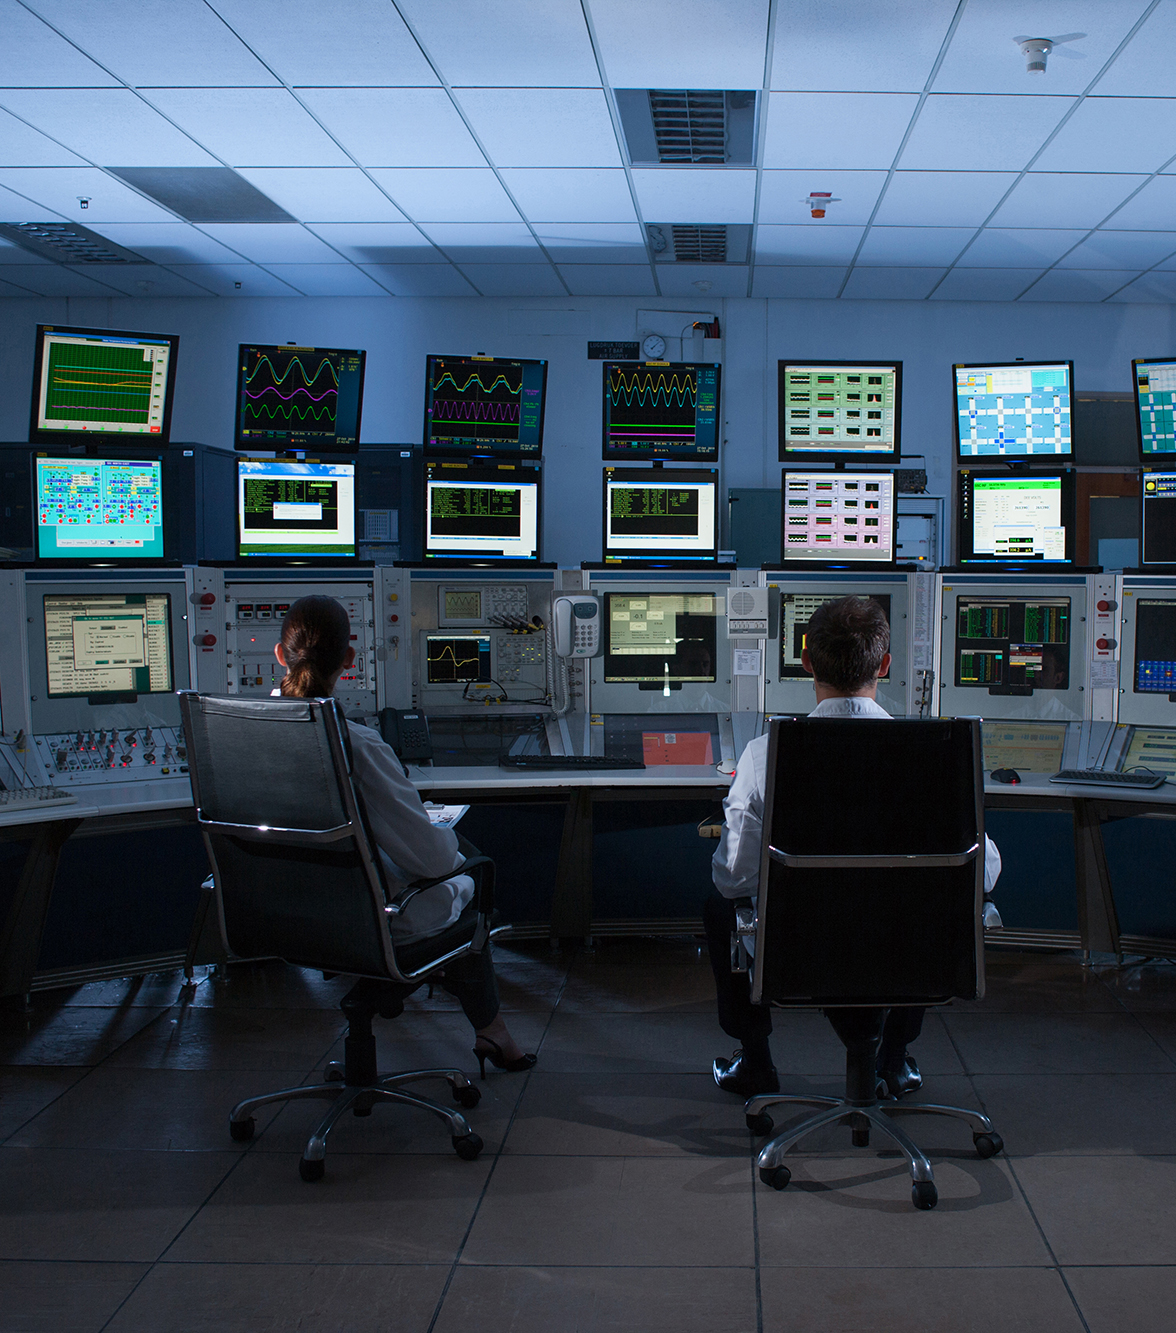 People monitoring computers in control room